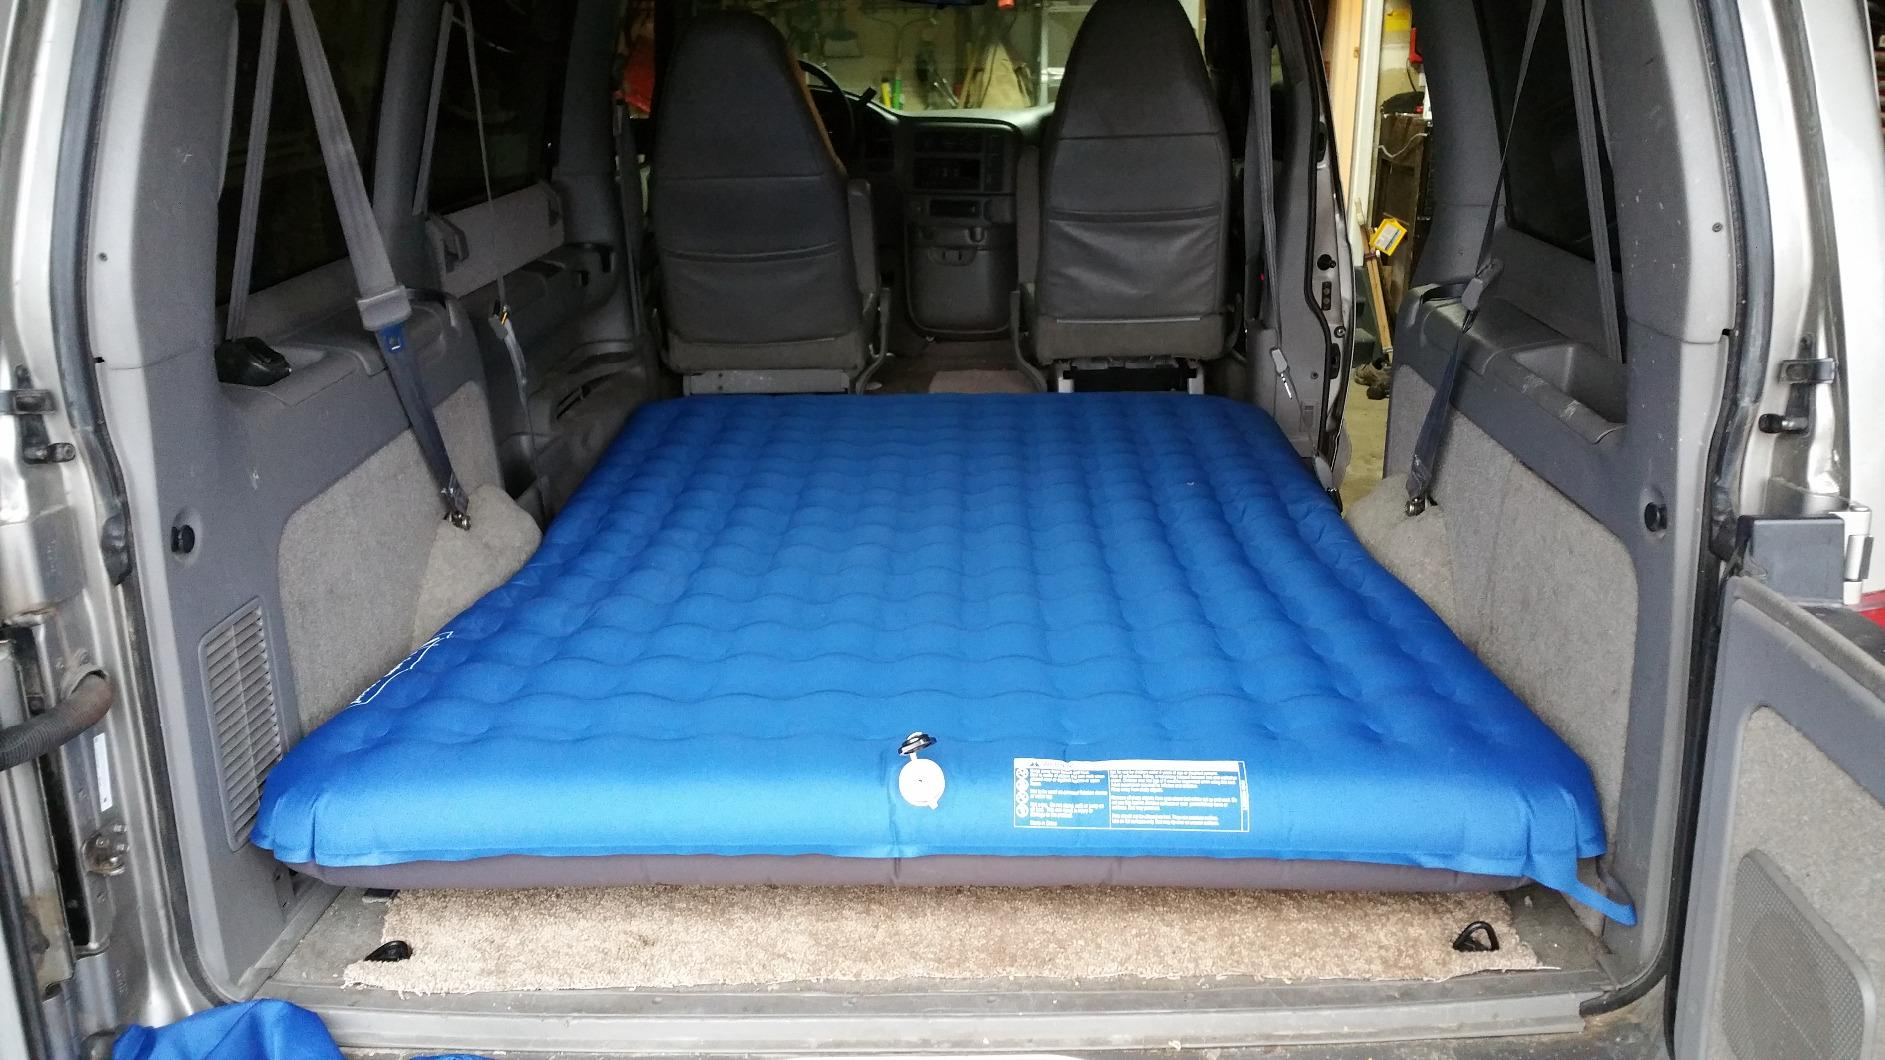 Finally! An air mattress that lives up to expectations!